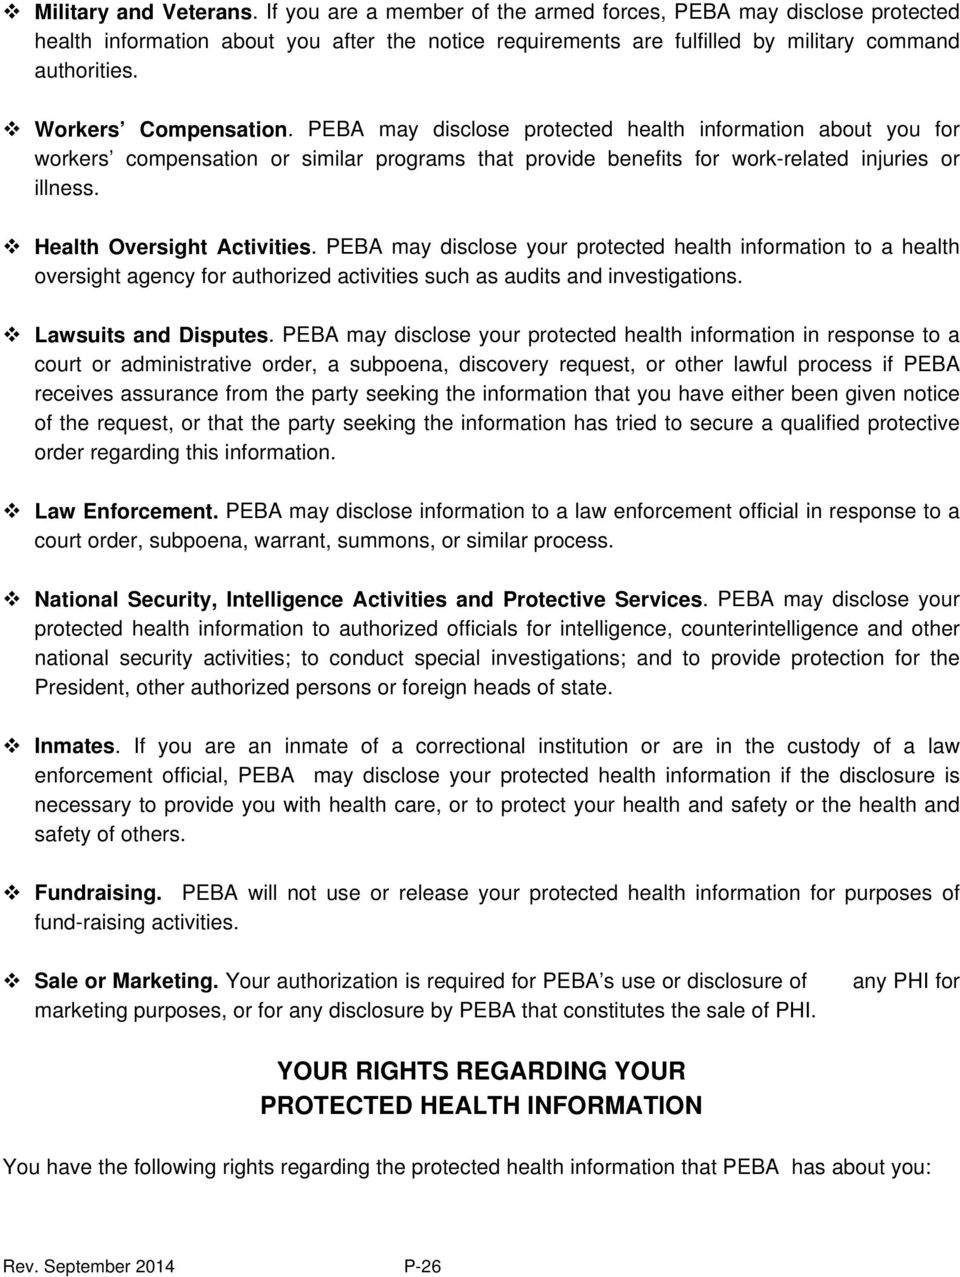 Health Oversight Activities. PEBA may disclose your protected health information to a health oversight agency for authorized activities such as audits and investigations. Lawsuits and Disputes.